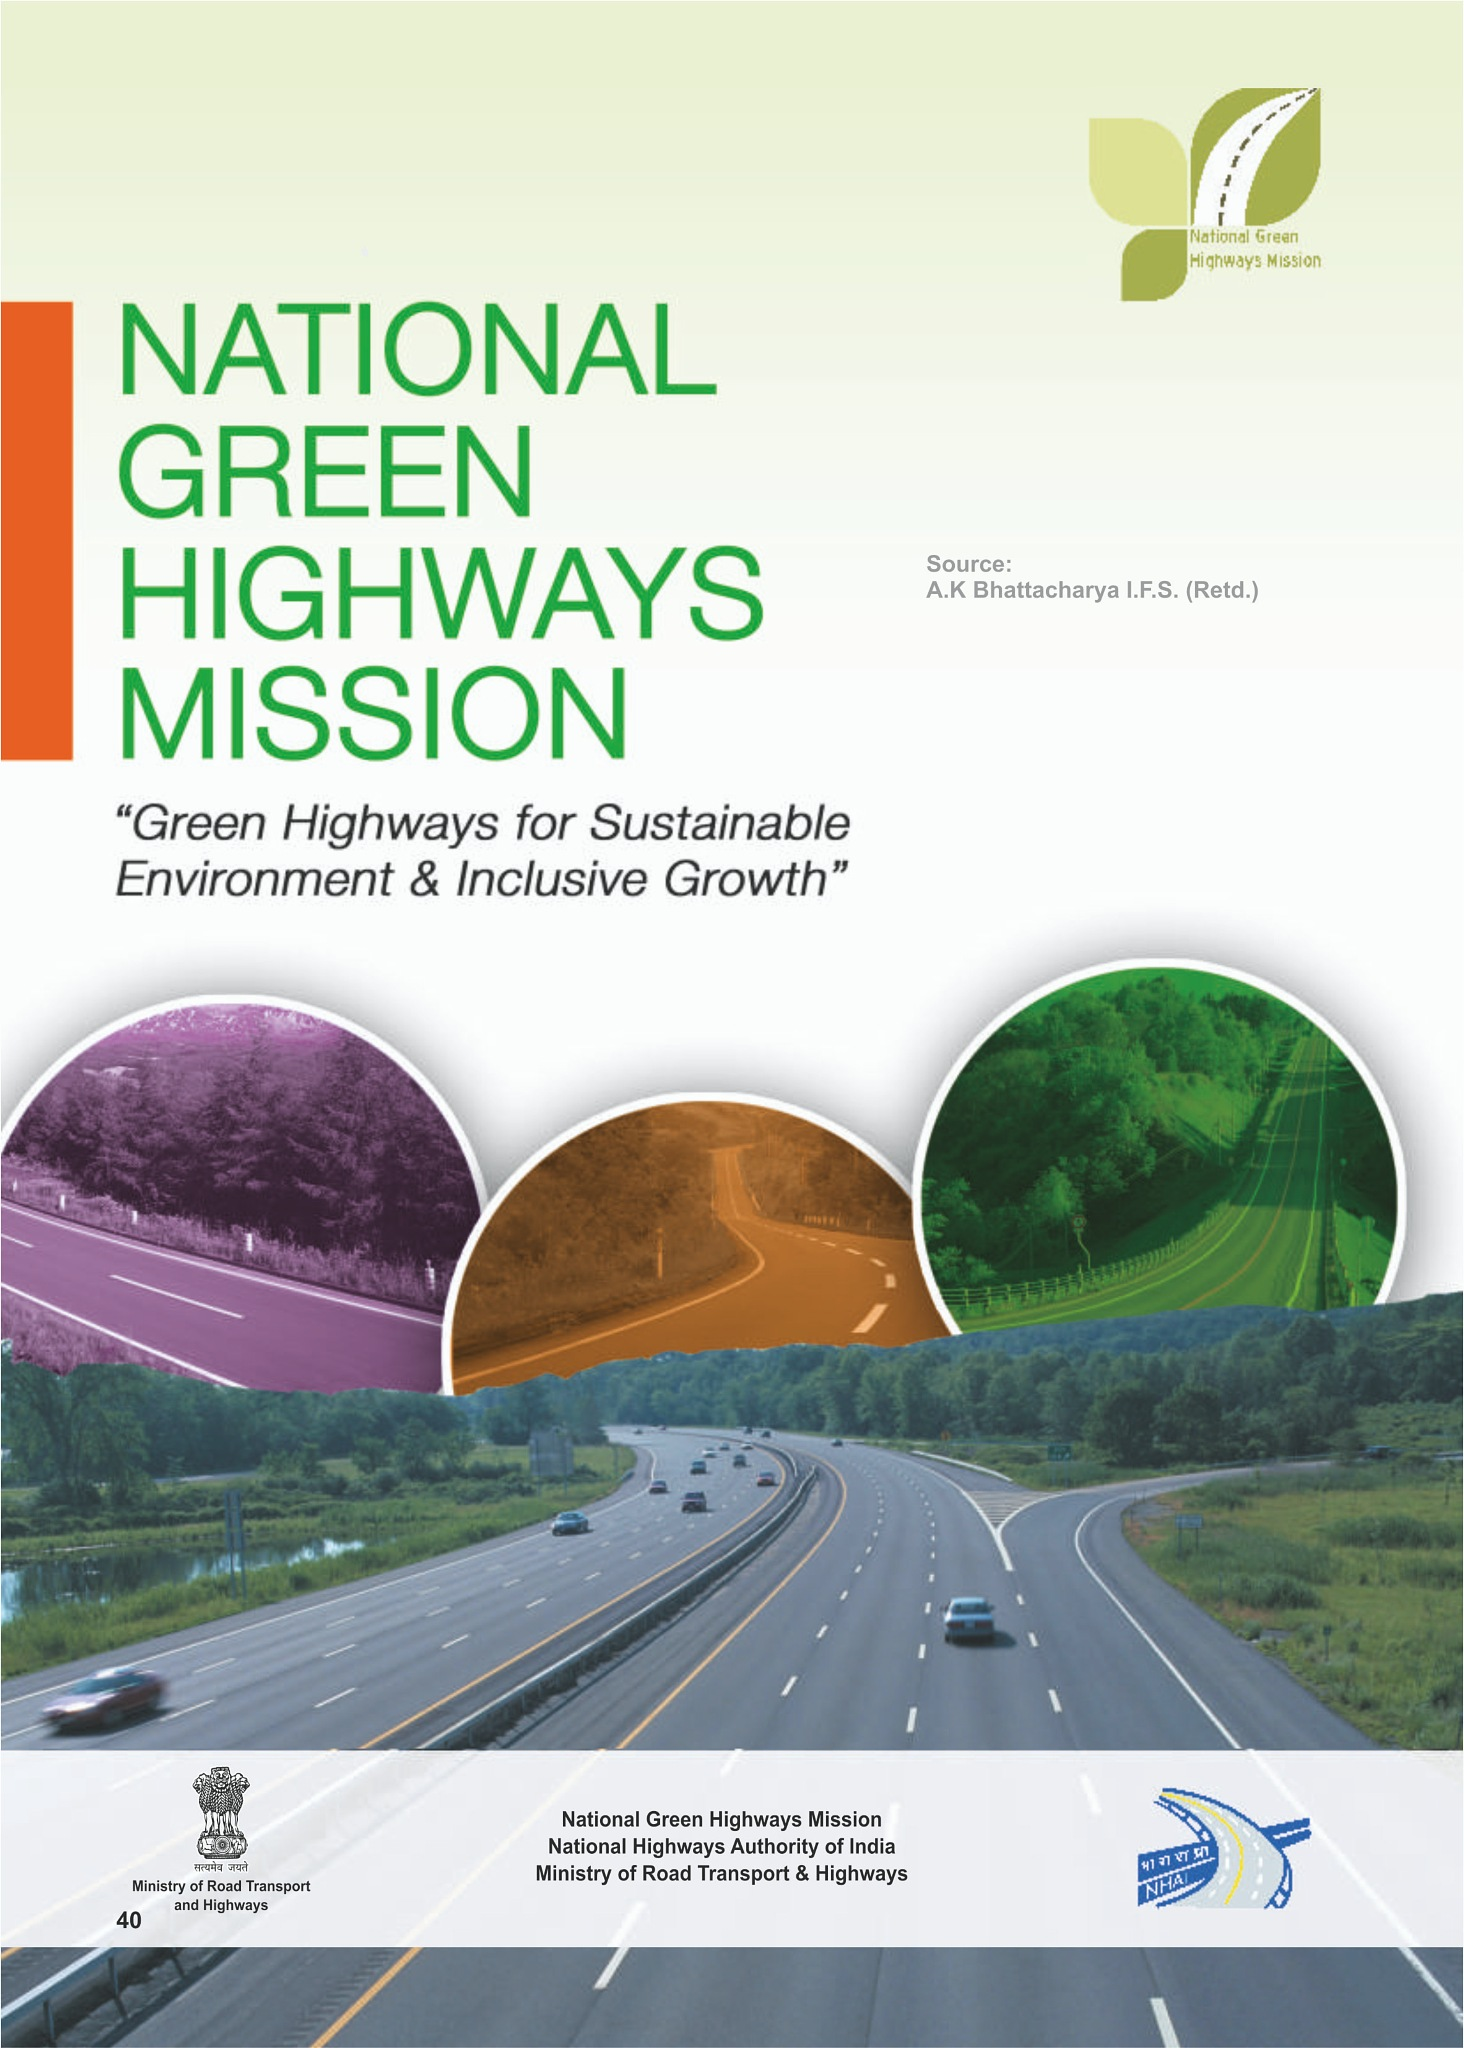 National Green Highway Mission by Jagdish Chandra